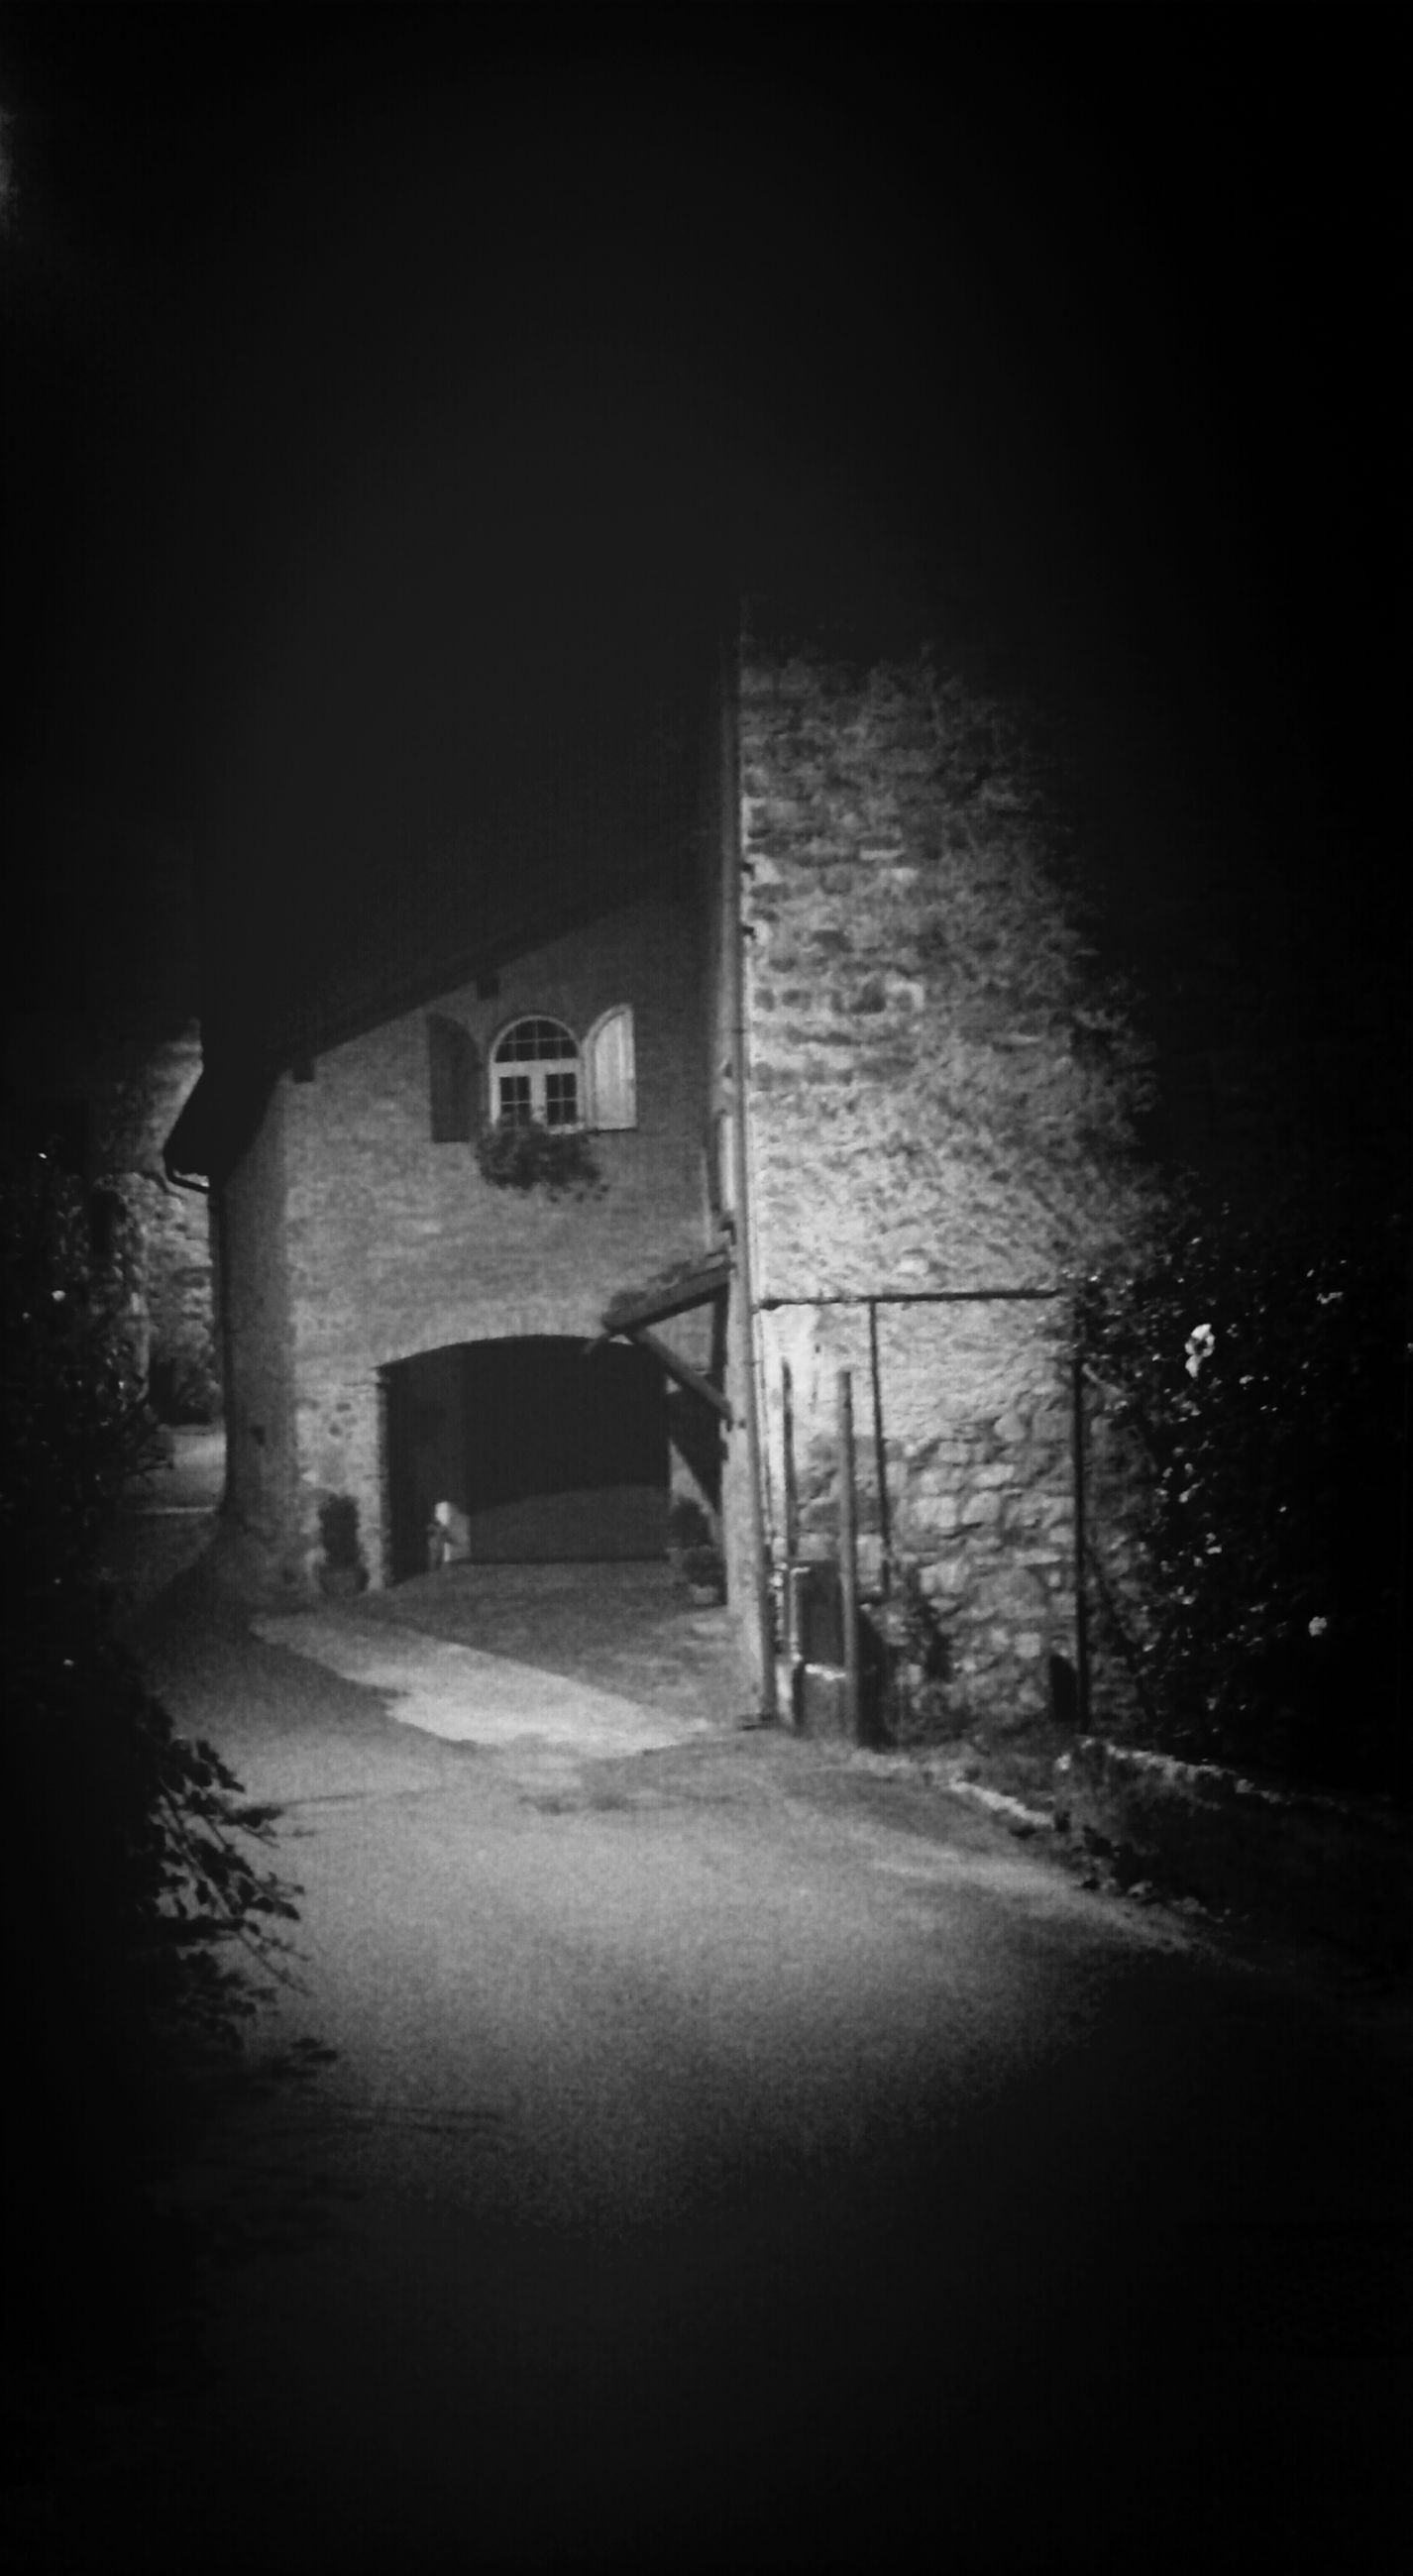 architecture, built structure, building exterior, the way forward, night, dark, building, indoors, street, wall - building feature, road, no people, house, empty, water, window, wall, illuminated